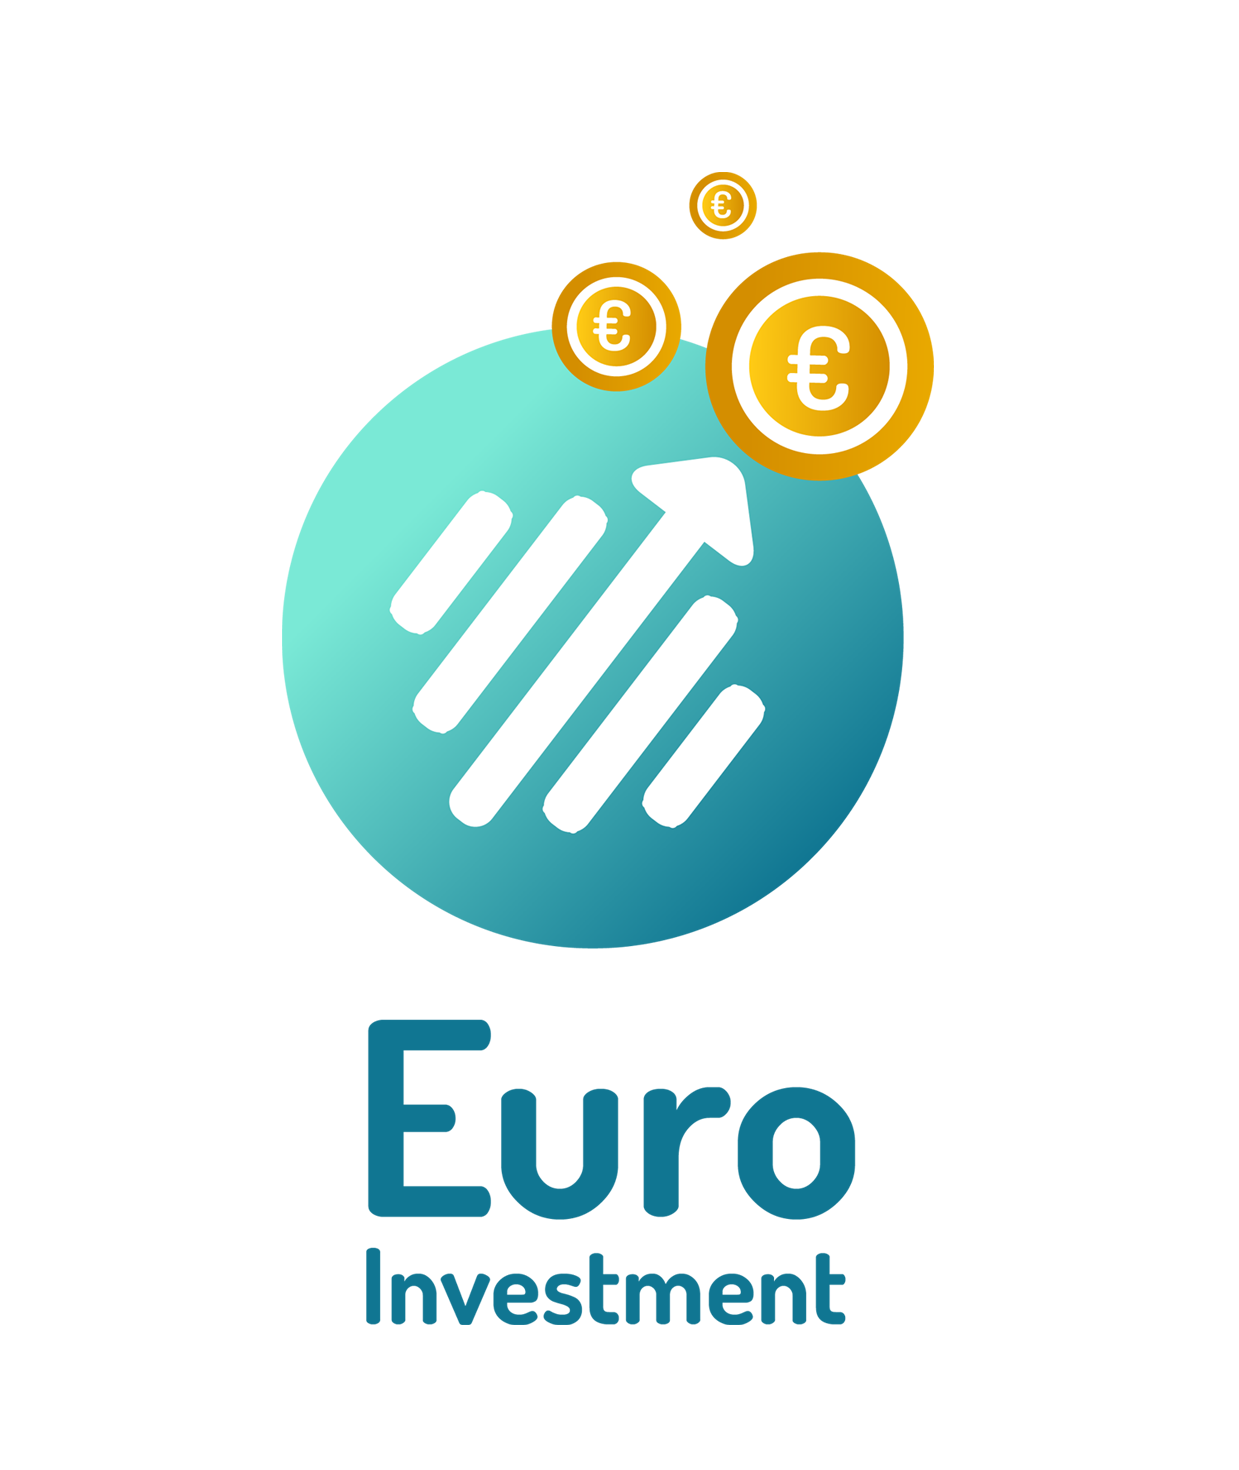 EUROINVESTMENT